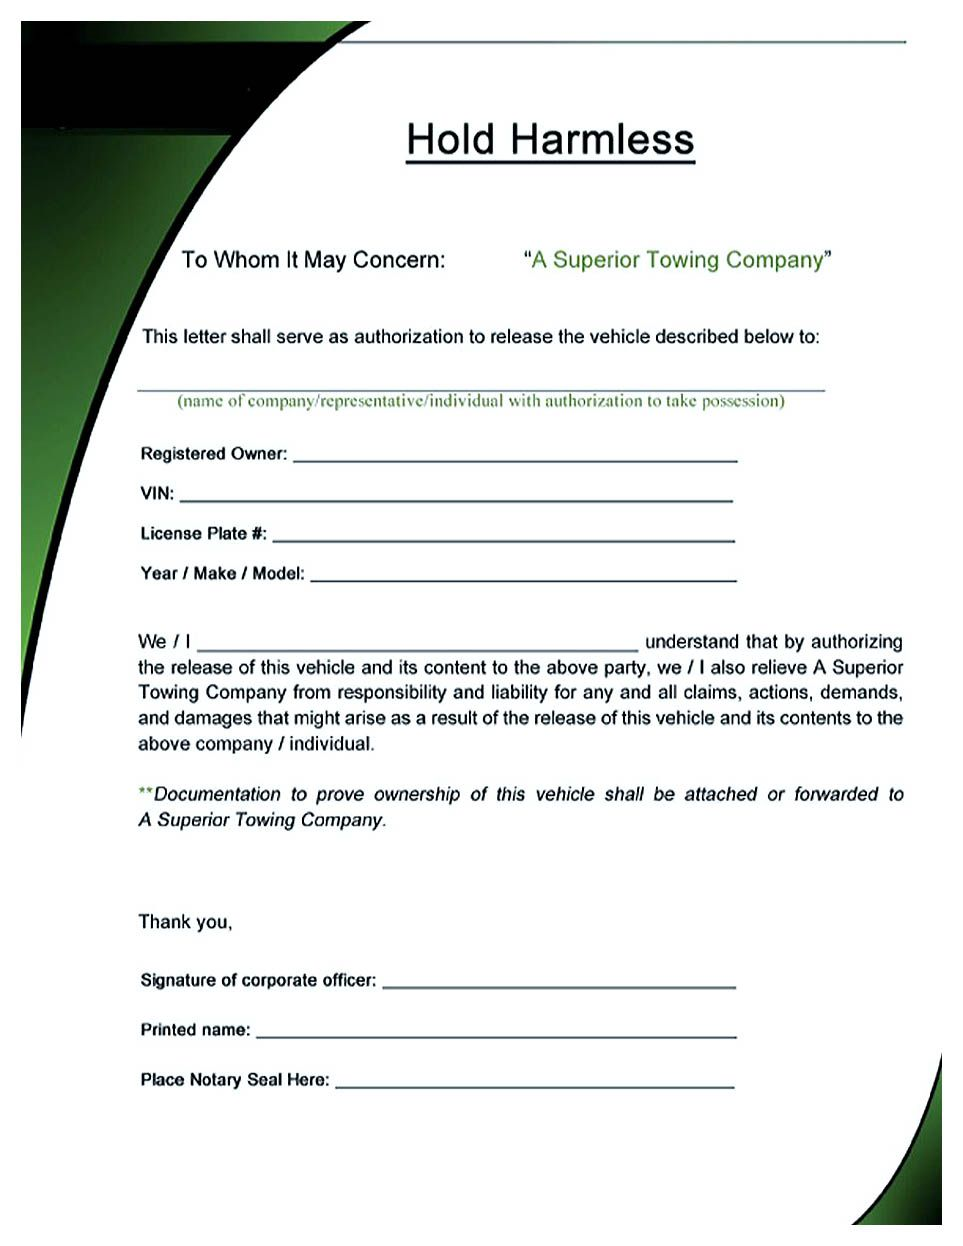 Hold Harmless Agreement Making Hold Harmless Agreement Template